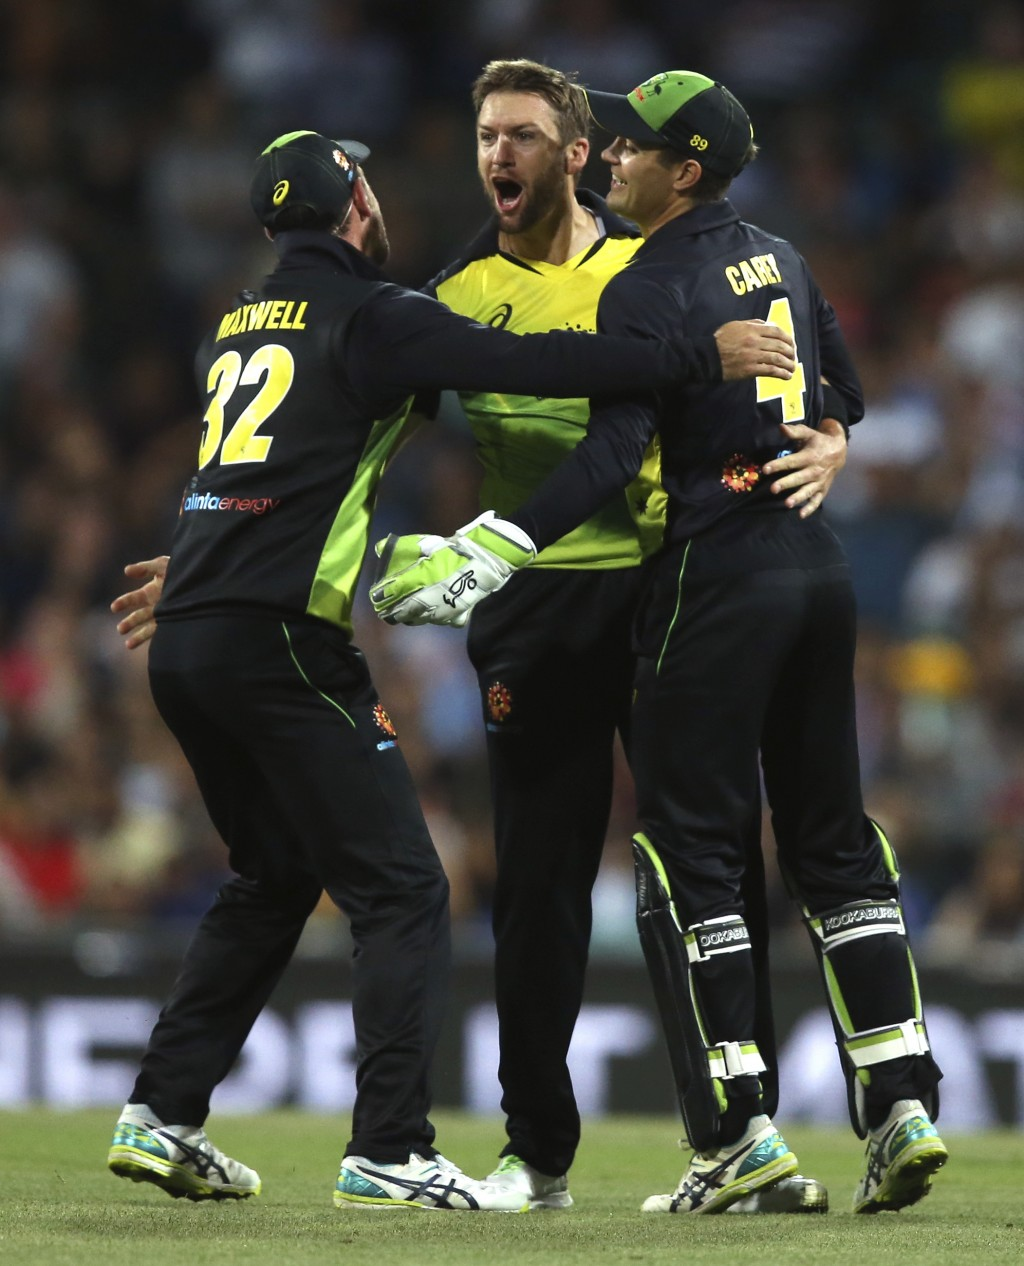 Australia's Andrew Tye, centre, is congratulated by teammates after dismissing India's Rishabh Pant during their Twenty20 cricket match in Sydney, Sun...